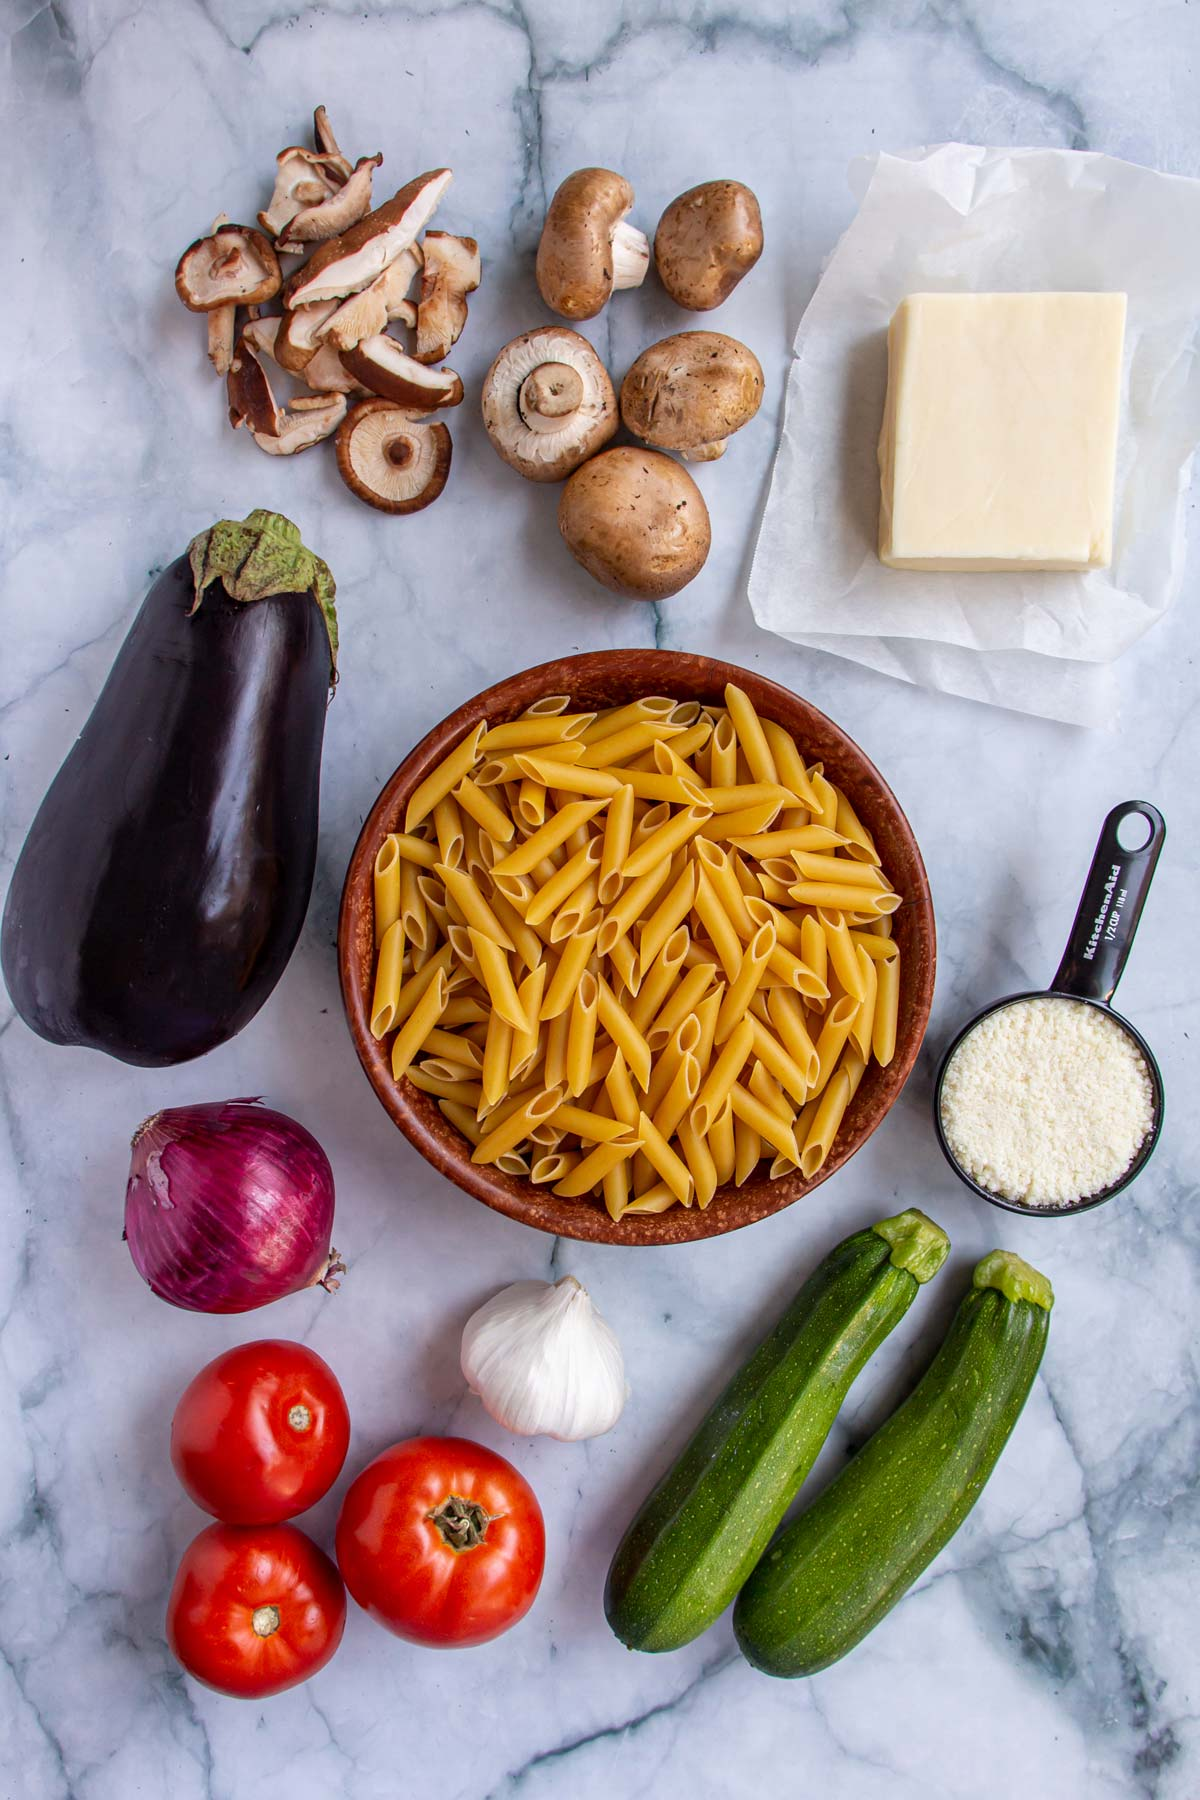 Ingredients for pasta al forno with roasted vegetables on a white marble background.